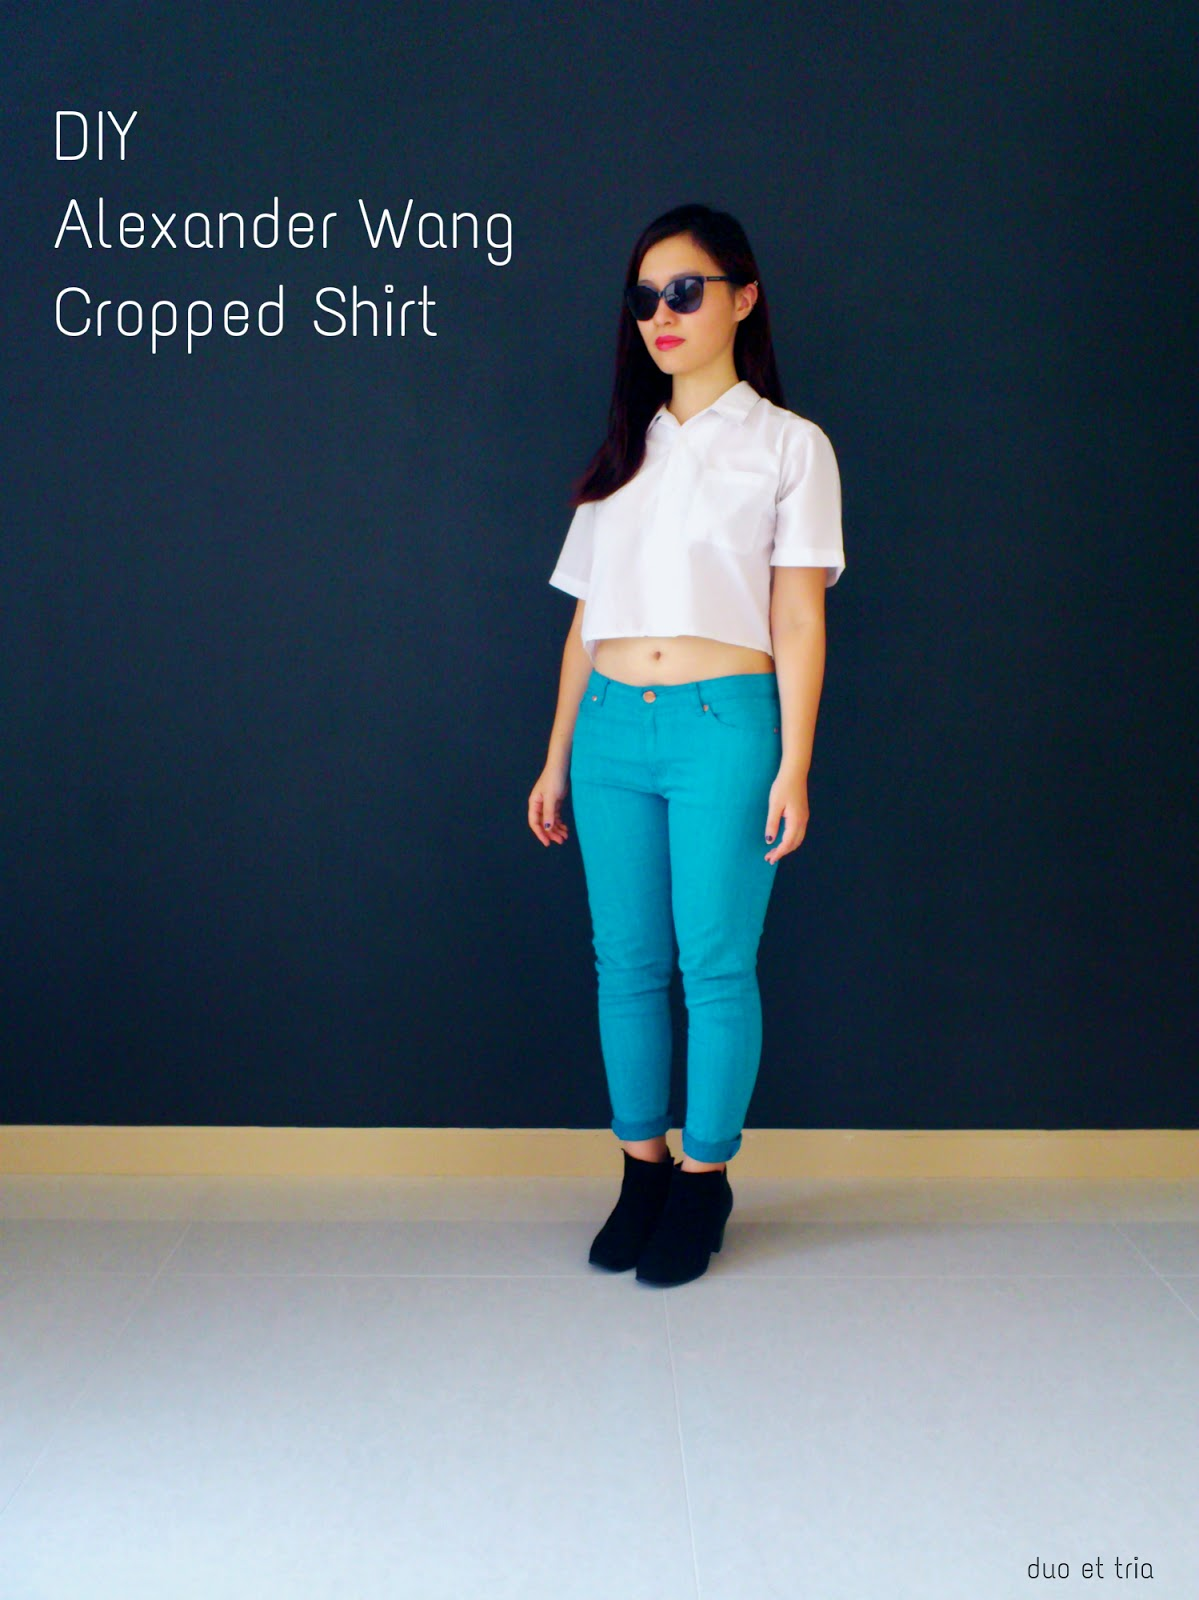 DIY Alexander Wang Cropped Shirt